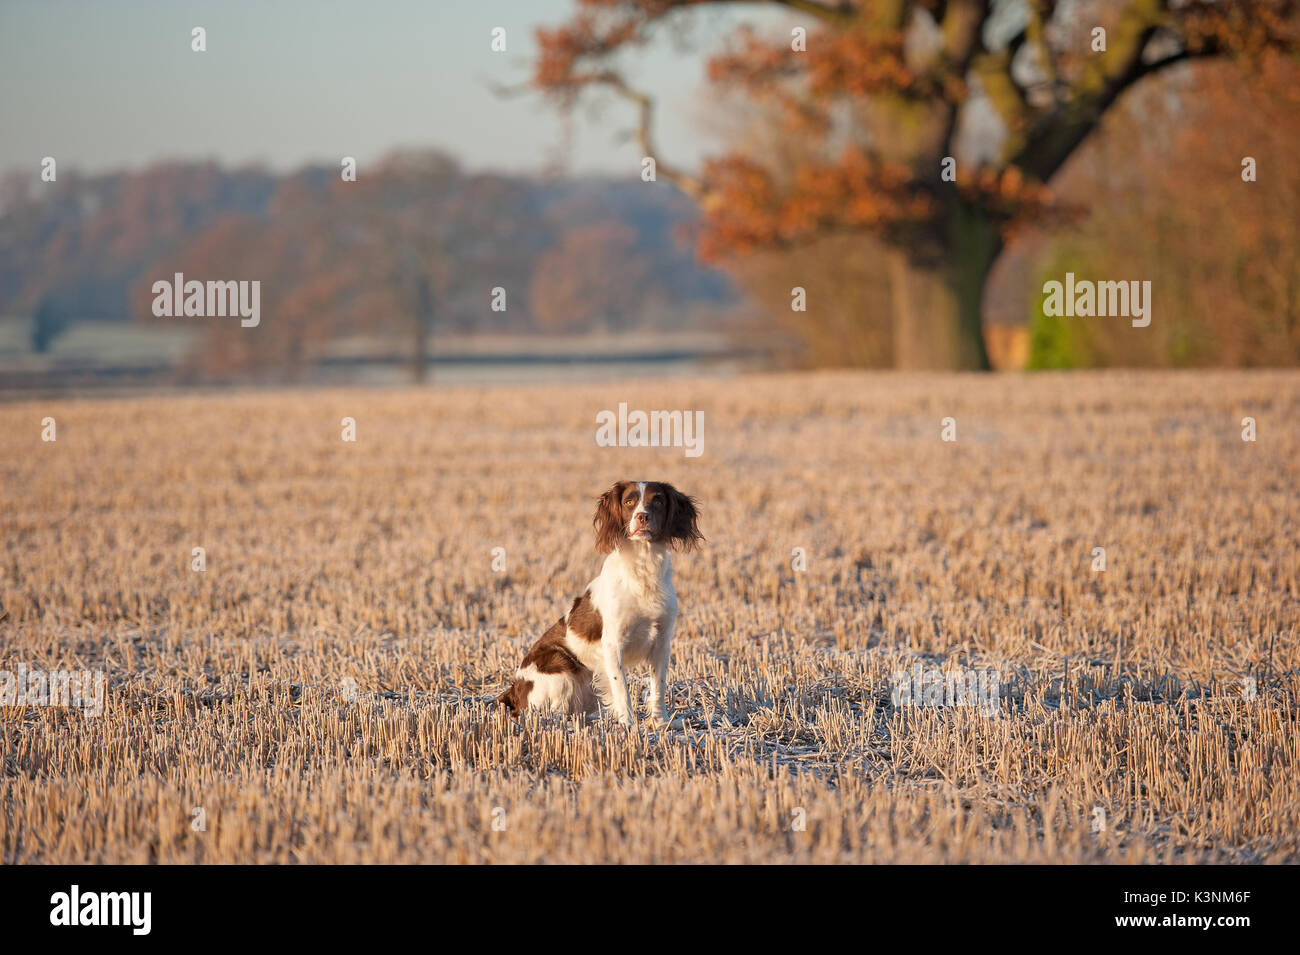 Springer spaniel on an Autumn morning - Stock Image